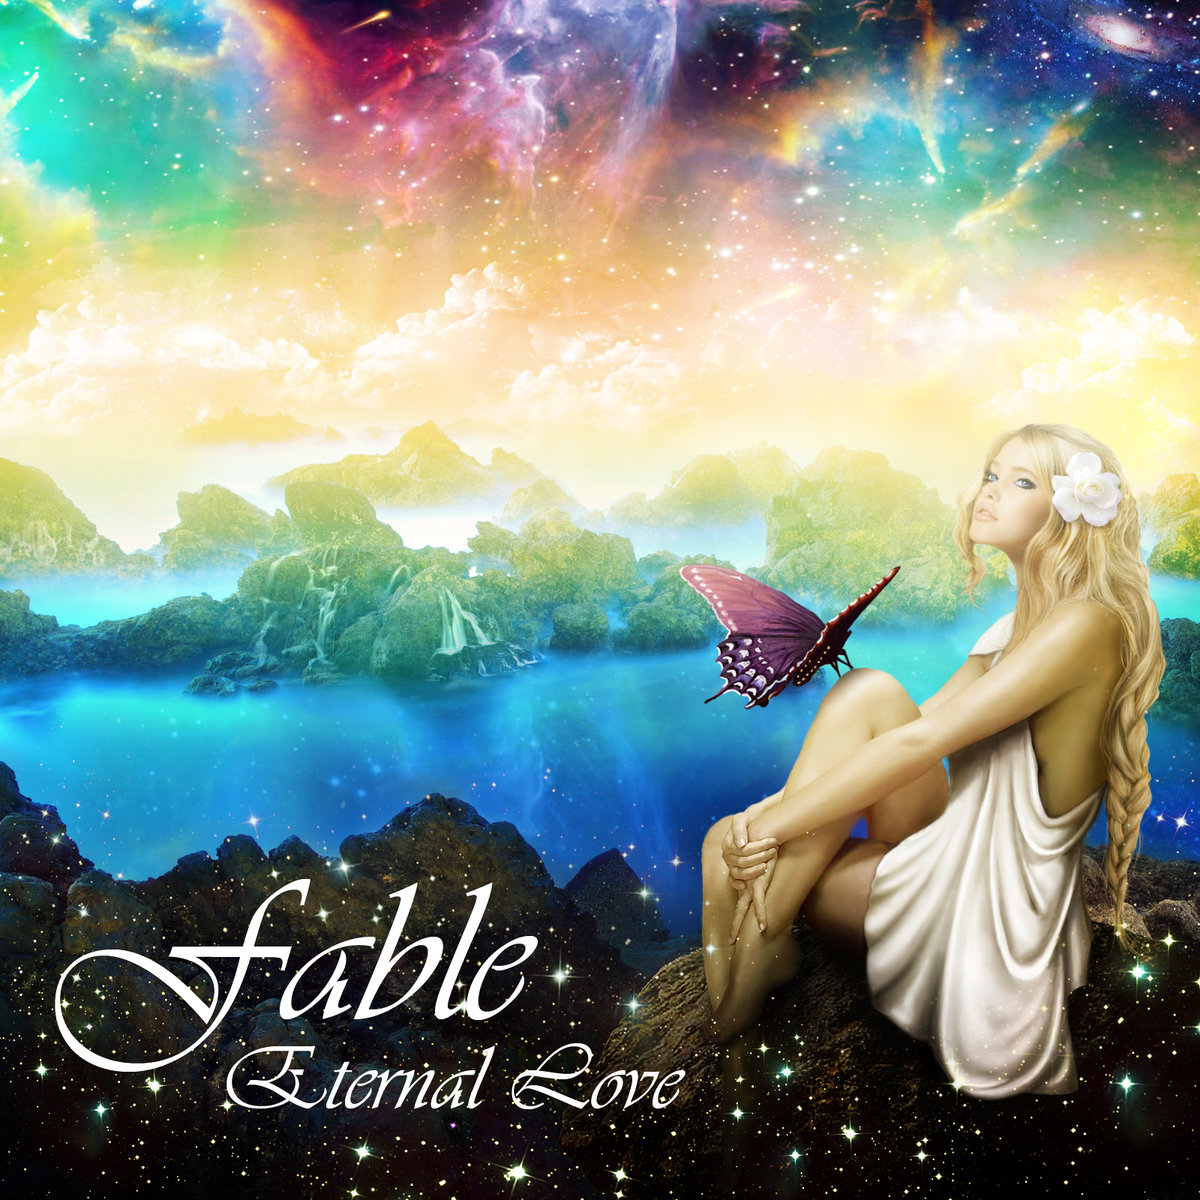 Eternal Love - Fascinating Sky @ 'Fable' album (ambient, chill)